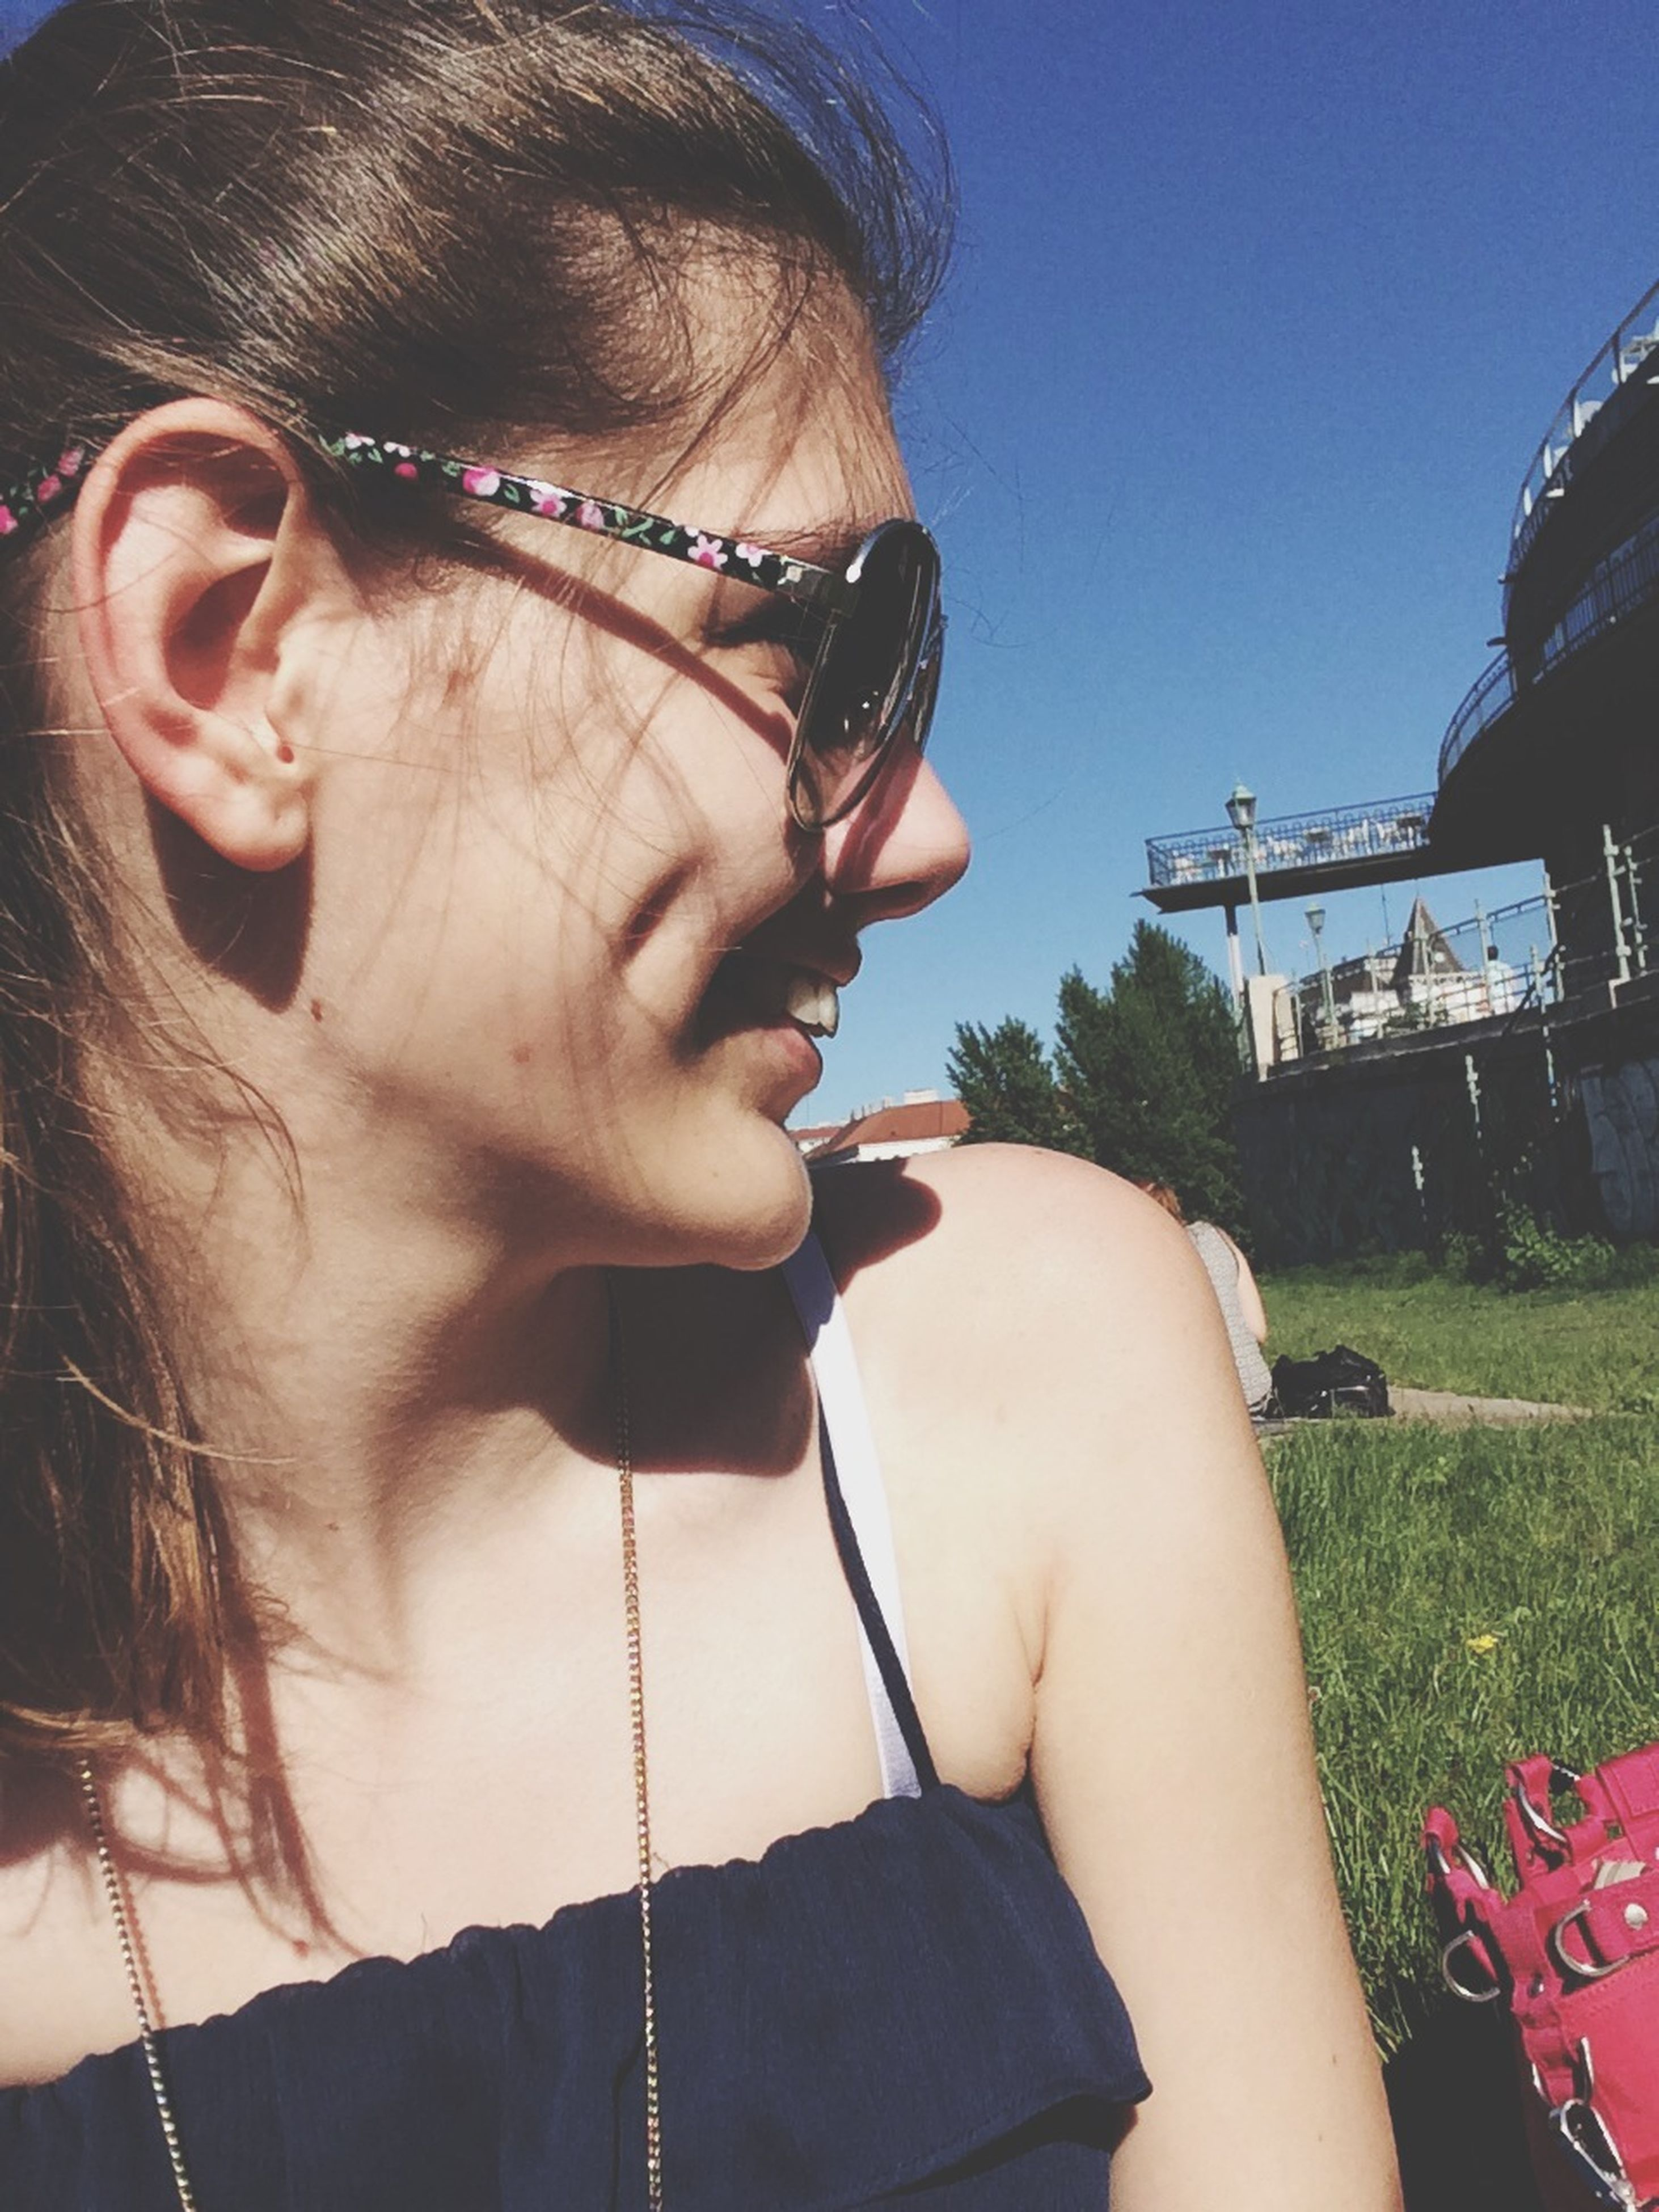 lifestyles, young adult, person, leisure activity, headshot, young women, holding, sunglasses, front view, casual clothing, close-up, focus on foreground, head and shoulders, portrait, looking at camera, smiling, human face